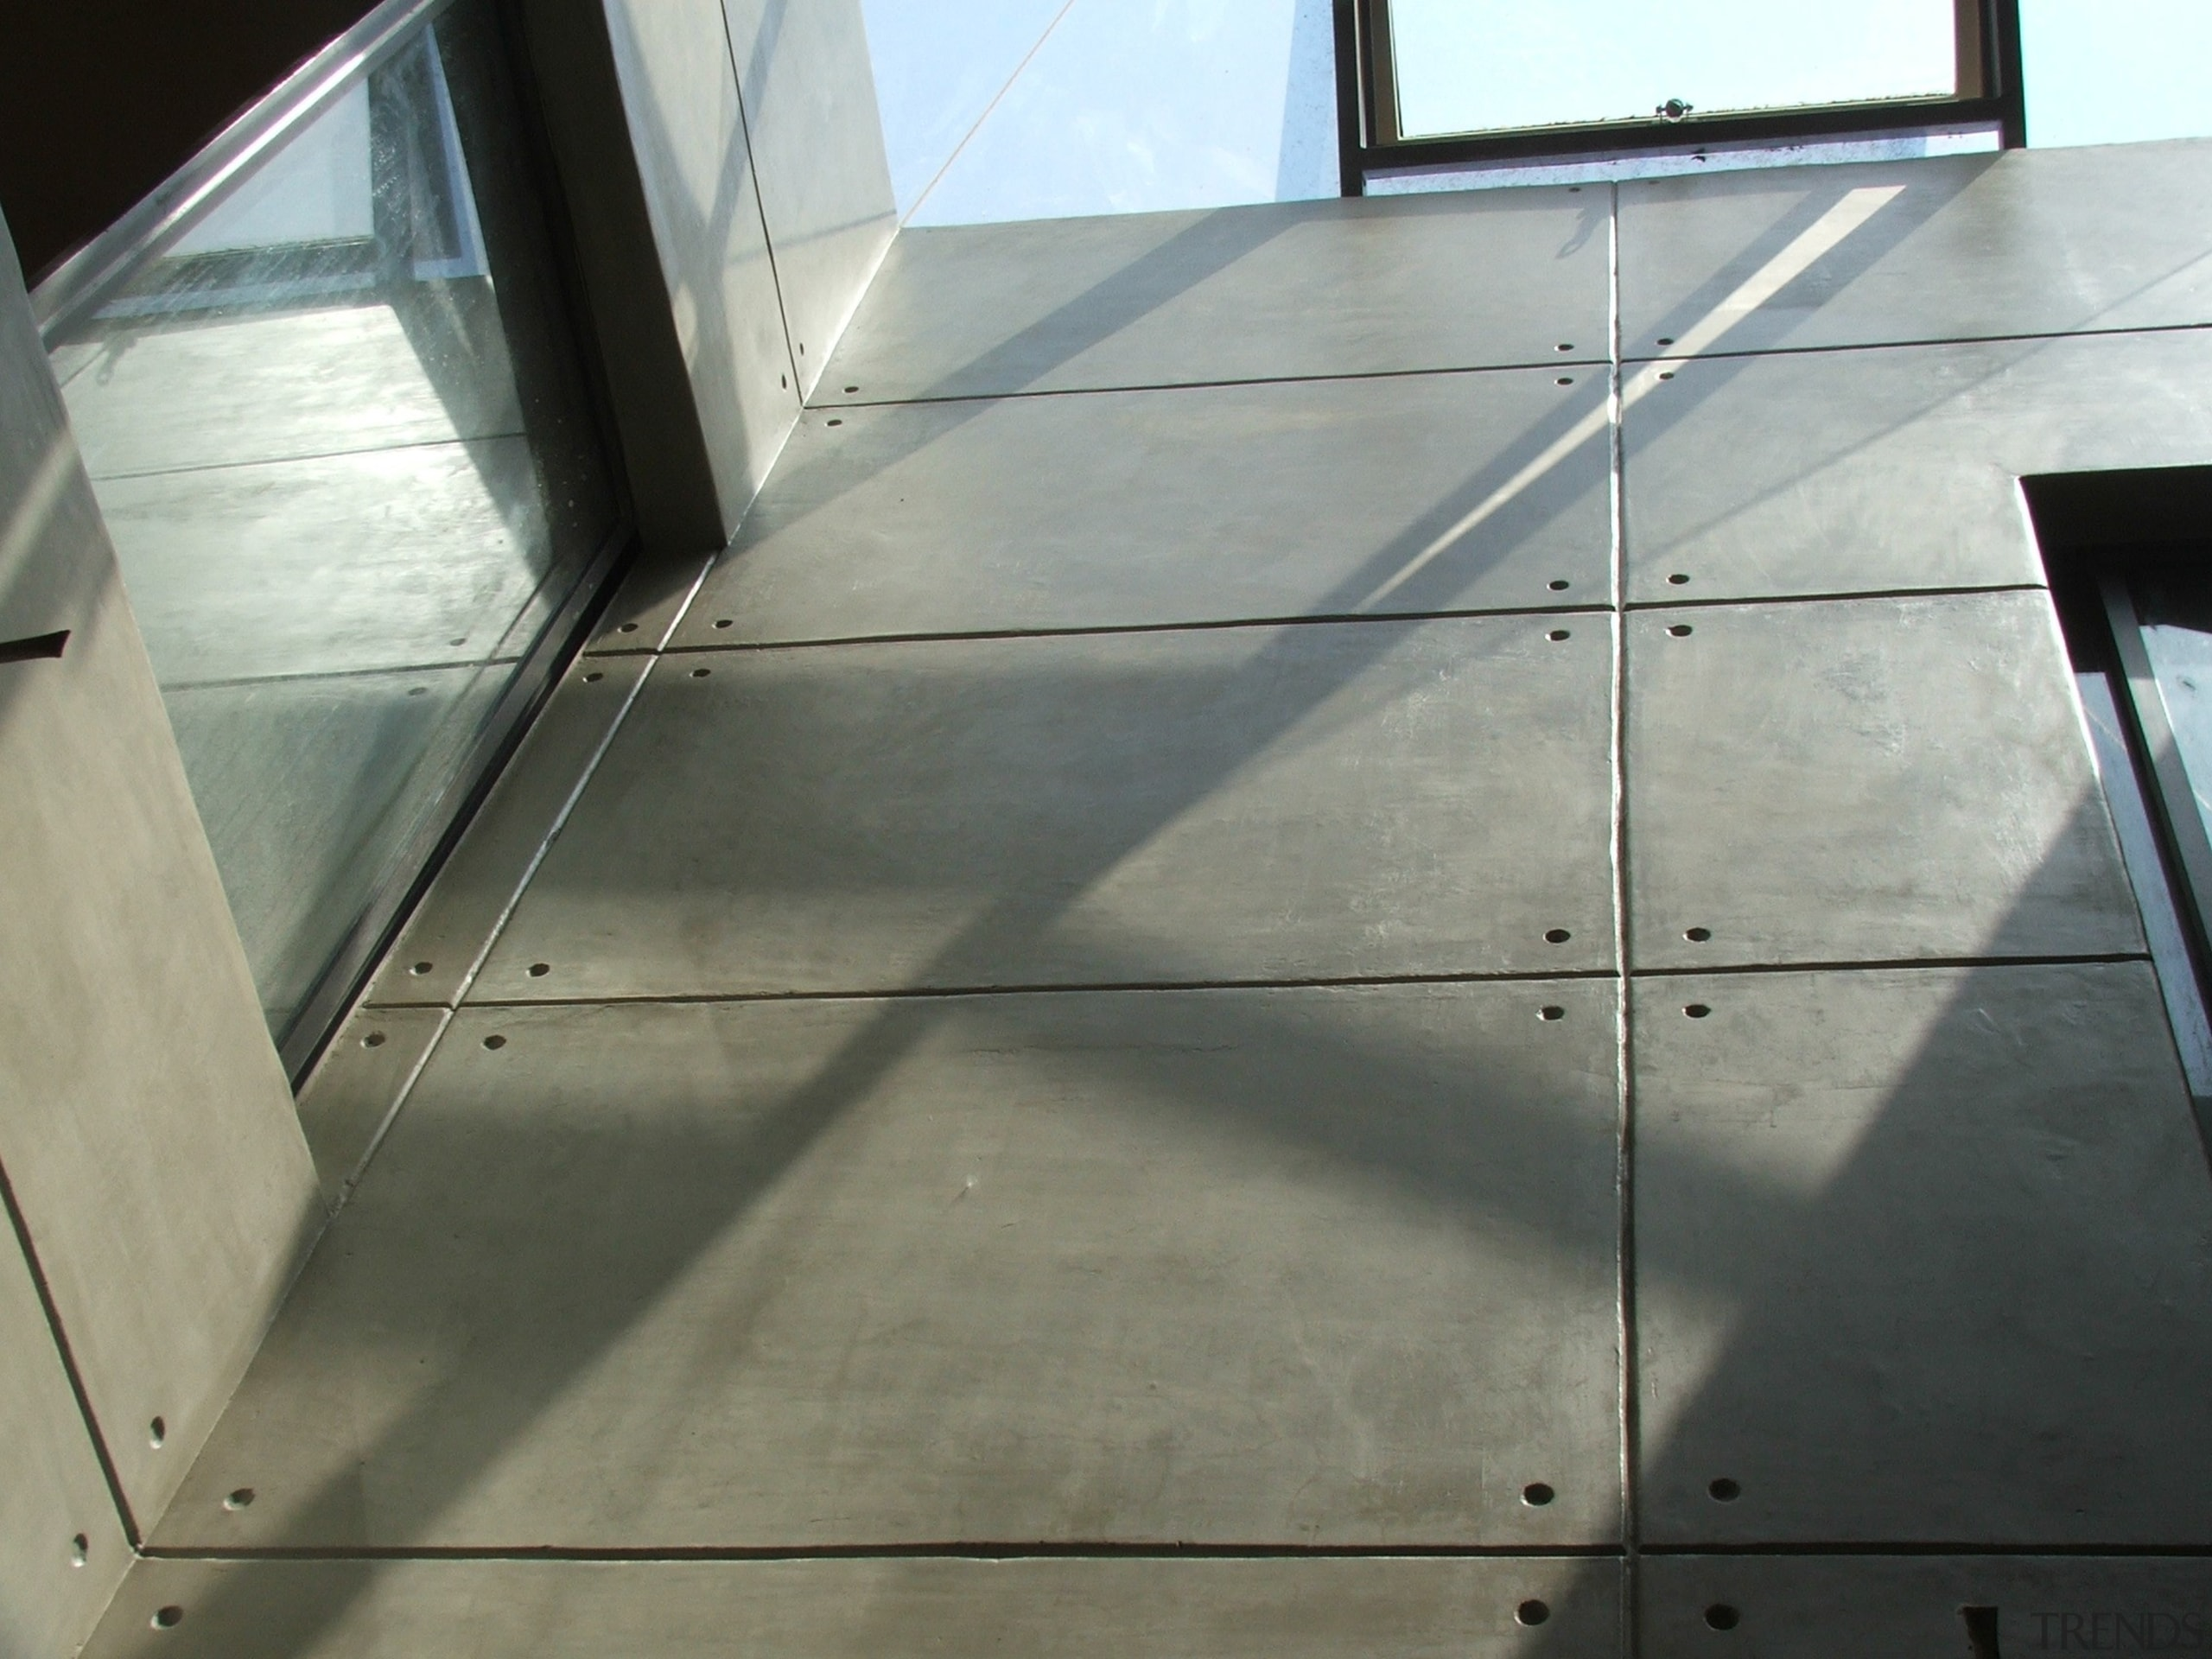 Micro Topping 23 - Micro Topping_23 - architecture architecture, daylighting, floor, flooring, glass, line, structure, wood, gray